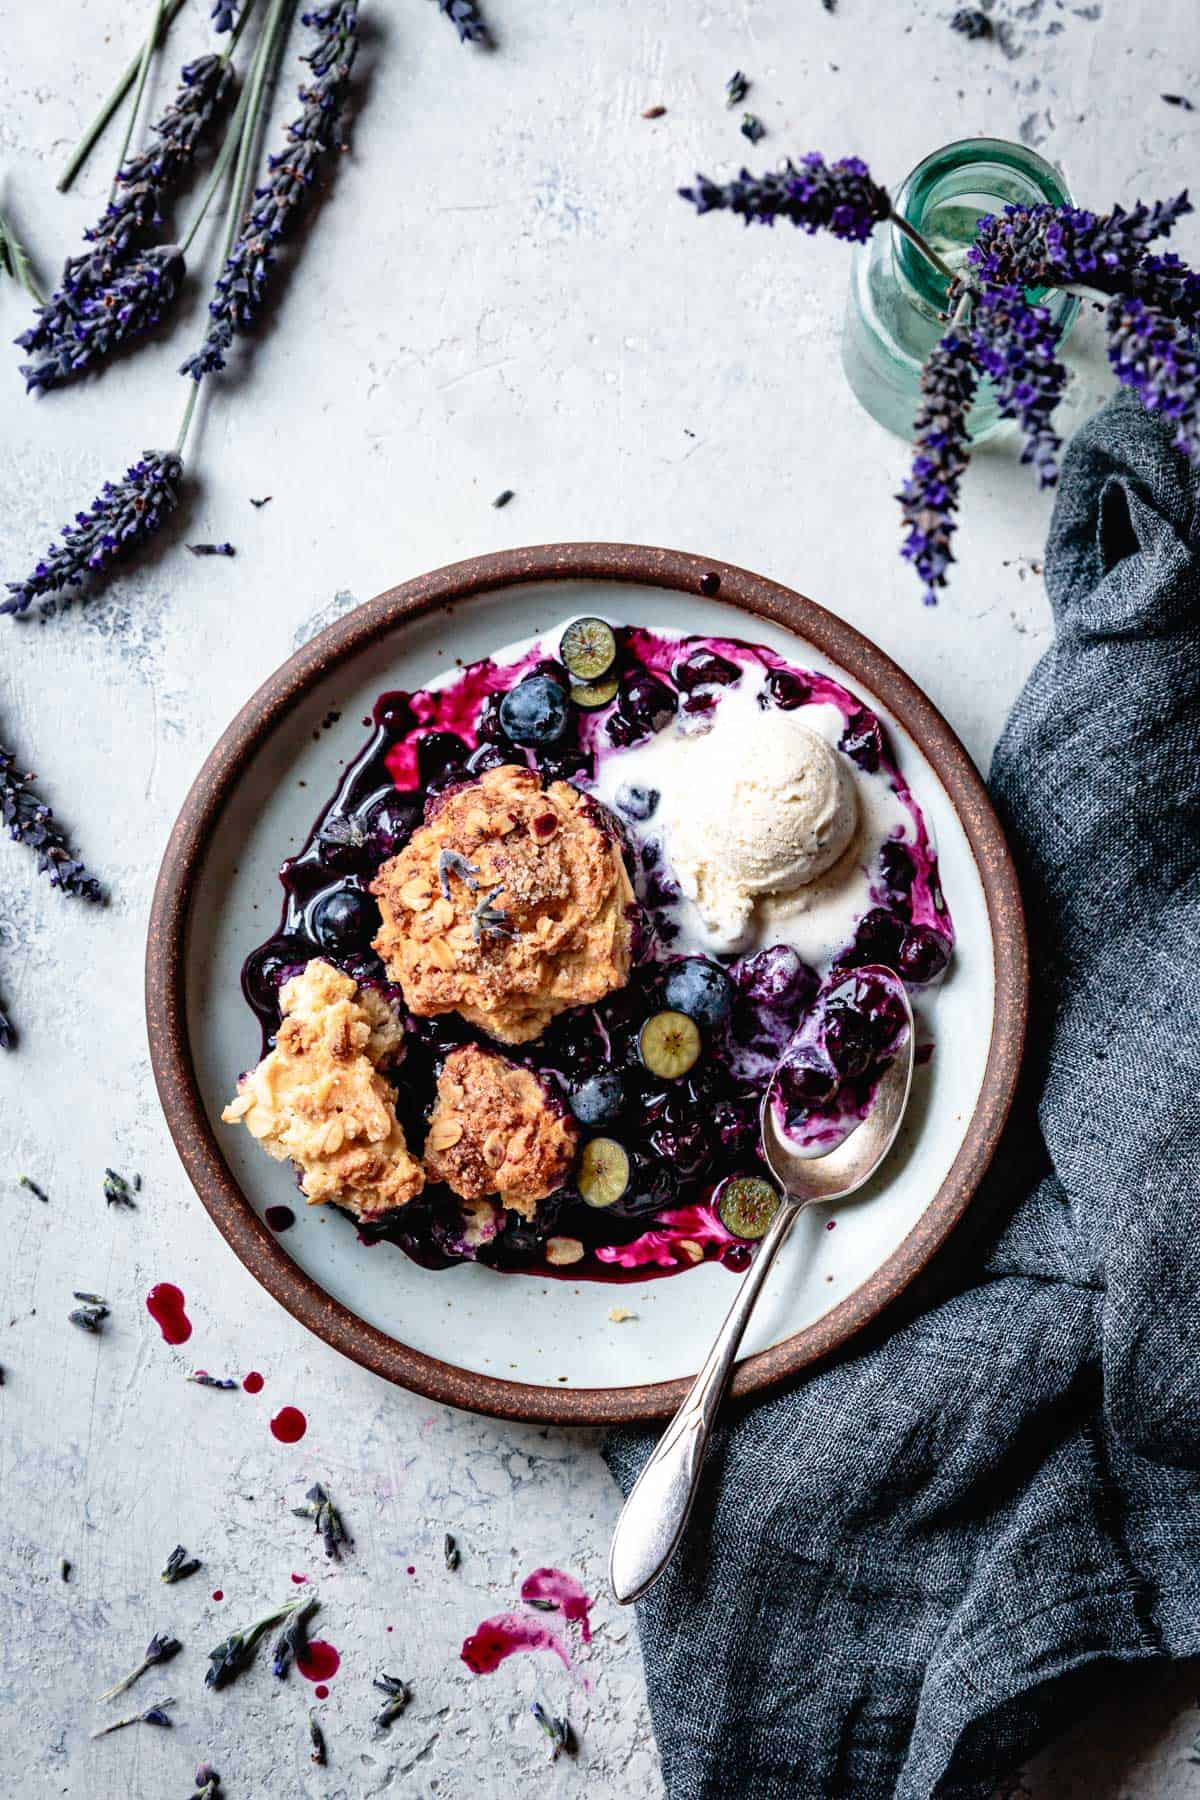 serving of Gluten Free Blueberry Cobbler with Lavender & Oat Biscuits